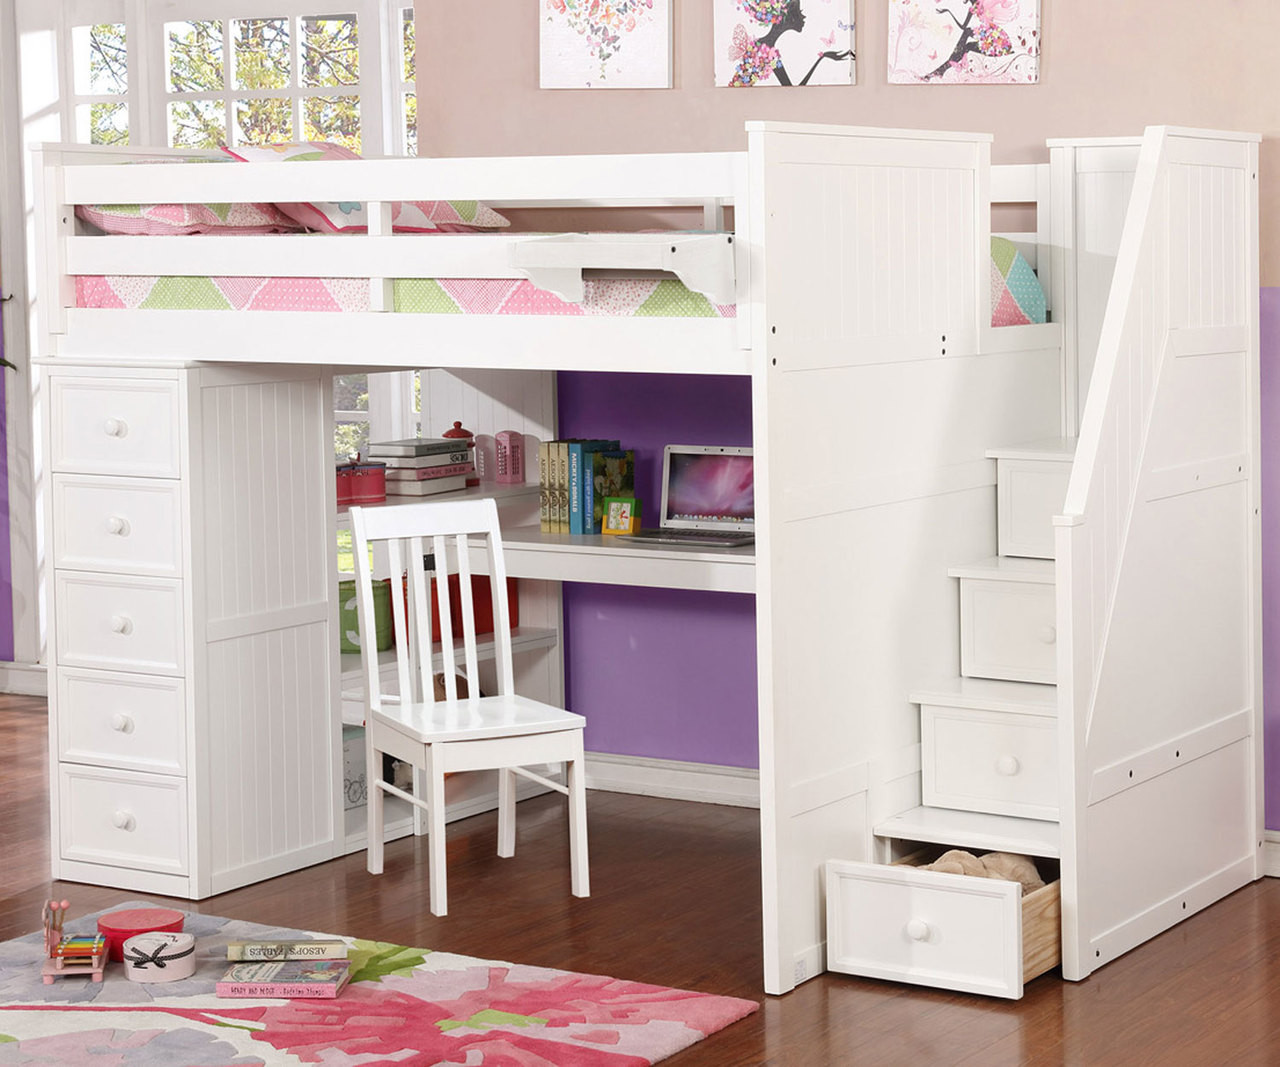 Picture of: Multifunction Full Size Loft Bed With Desk In White Allen House Kids Loft Beds And Bunk Beds